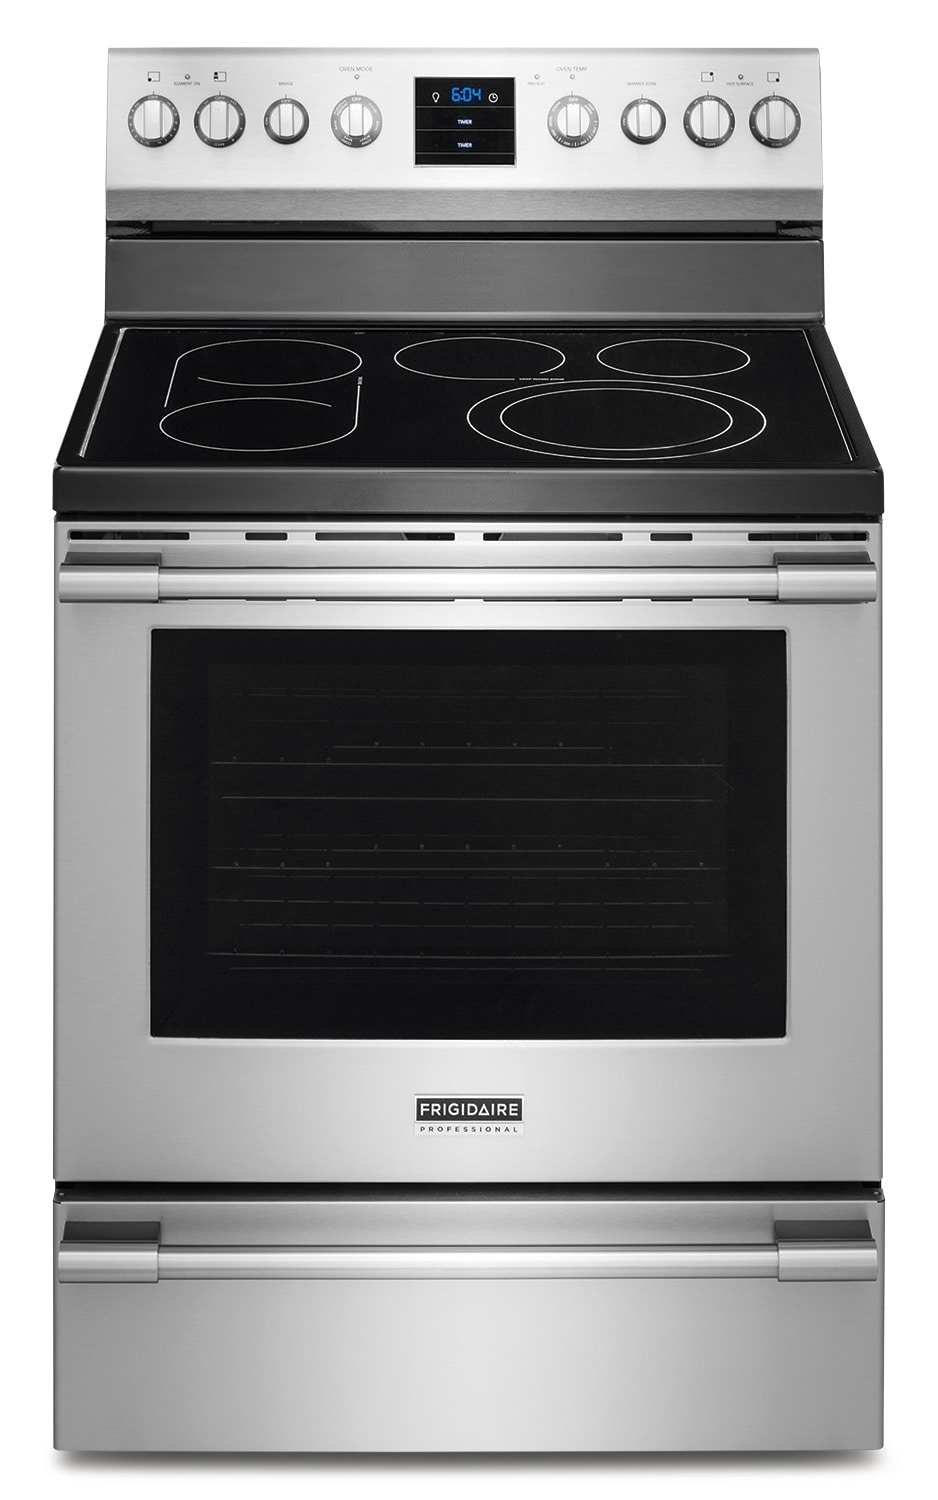 Cooking Products - Frigidaire Professional Stainless Steel Electric Convection Range (6.1 Cu. Ft.) - CPEF3077QF